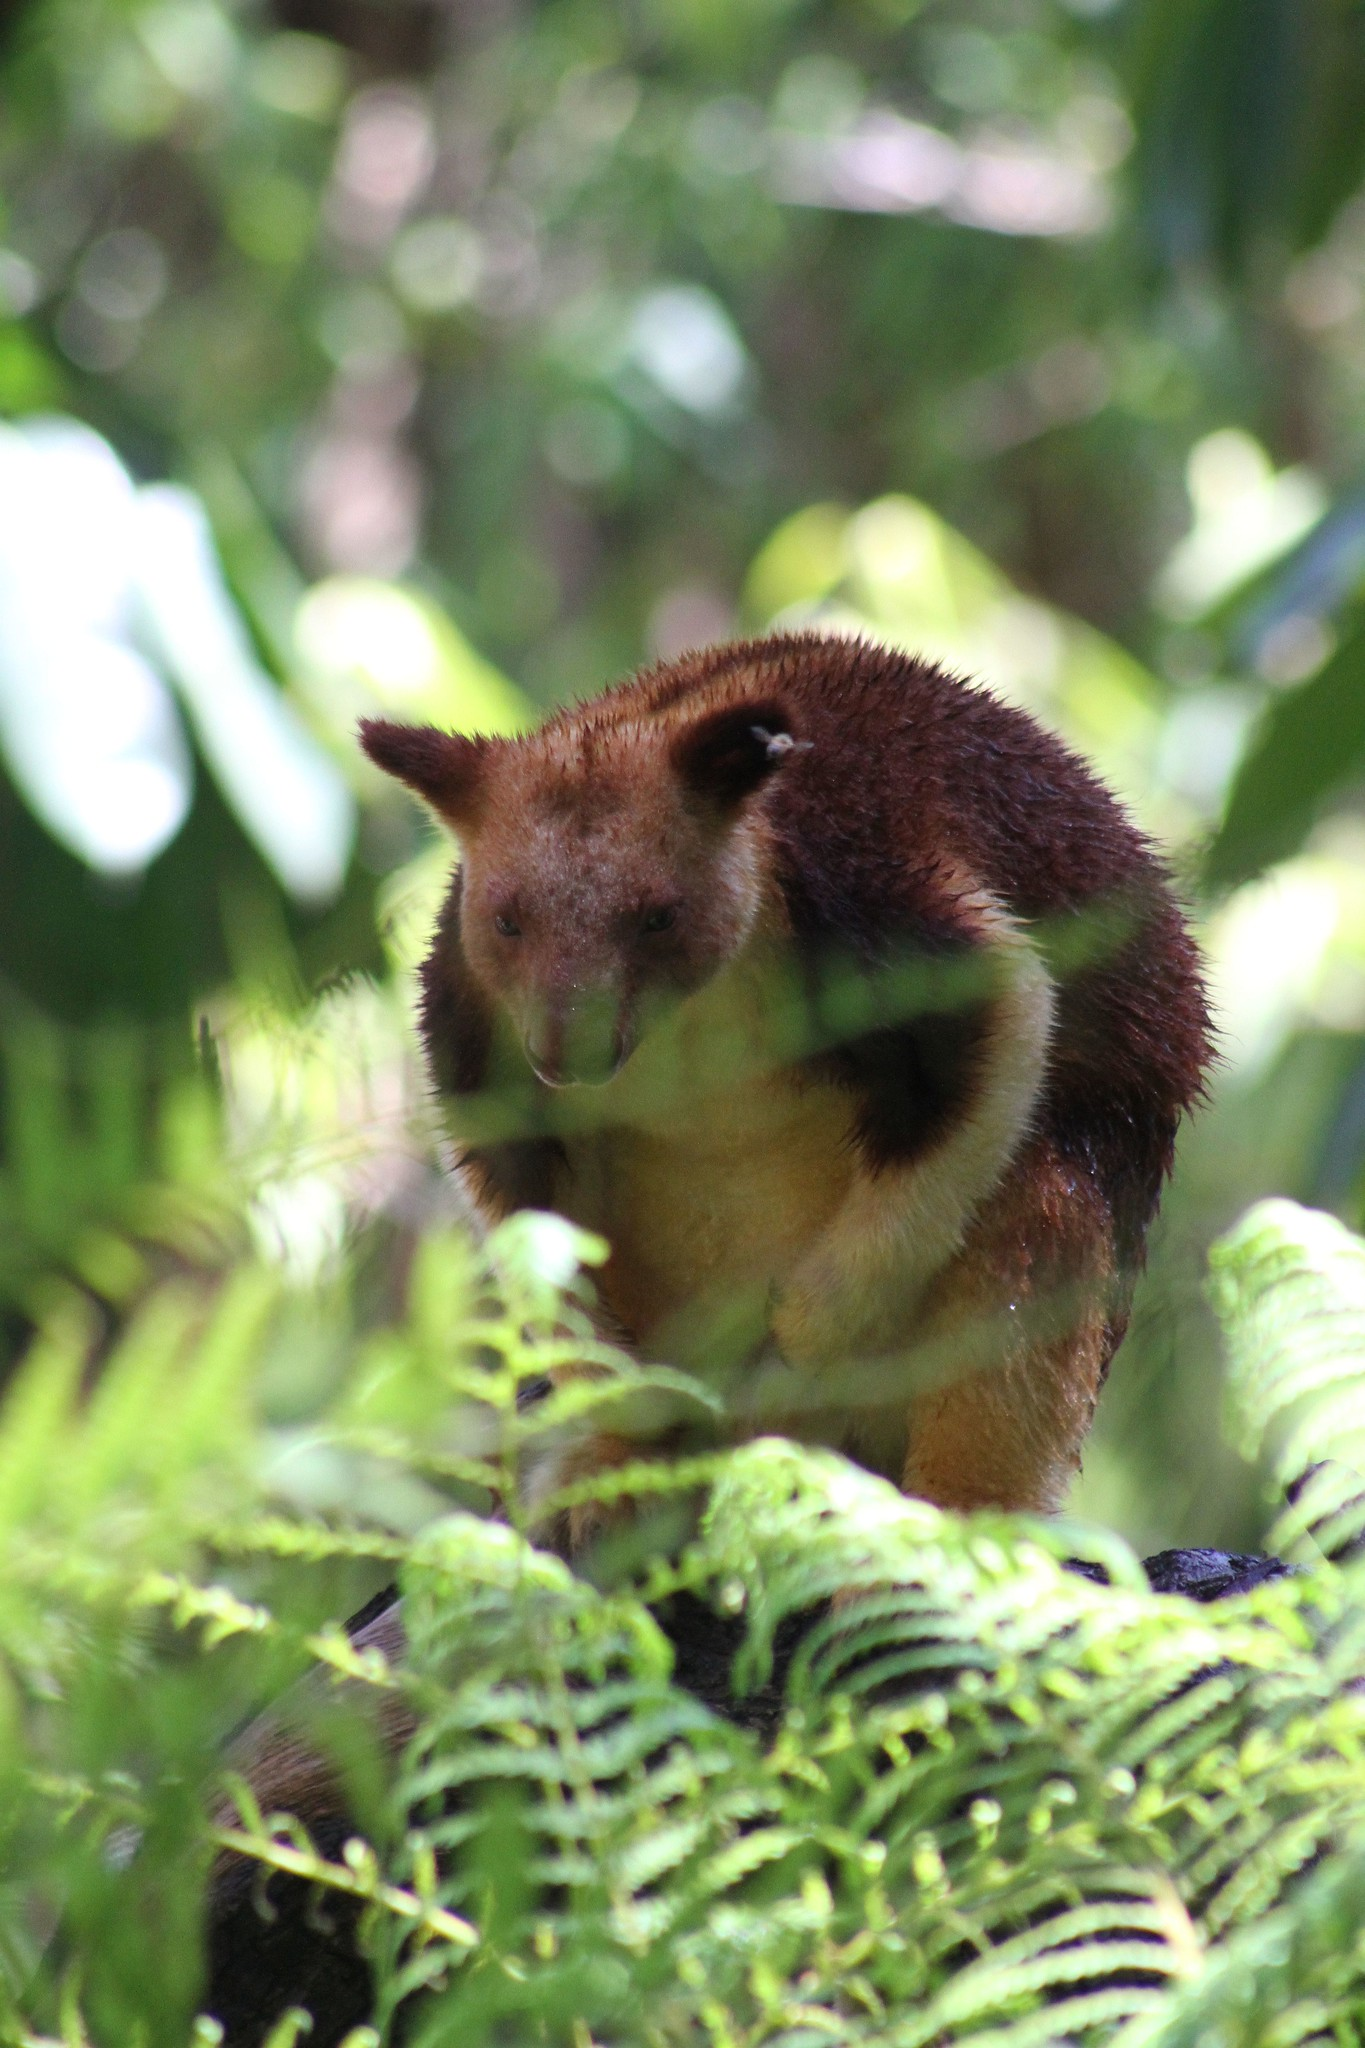 Goodfellow's-tree-kangaroo-Dendrolagus-godfellowi-montane-tropical-forest-habitat-loss-endangered